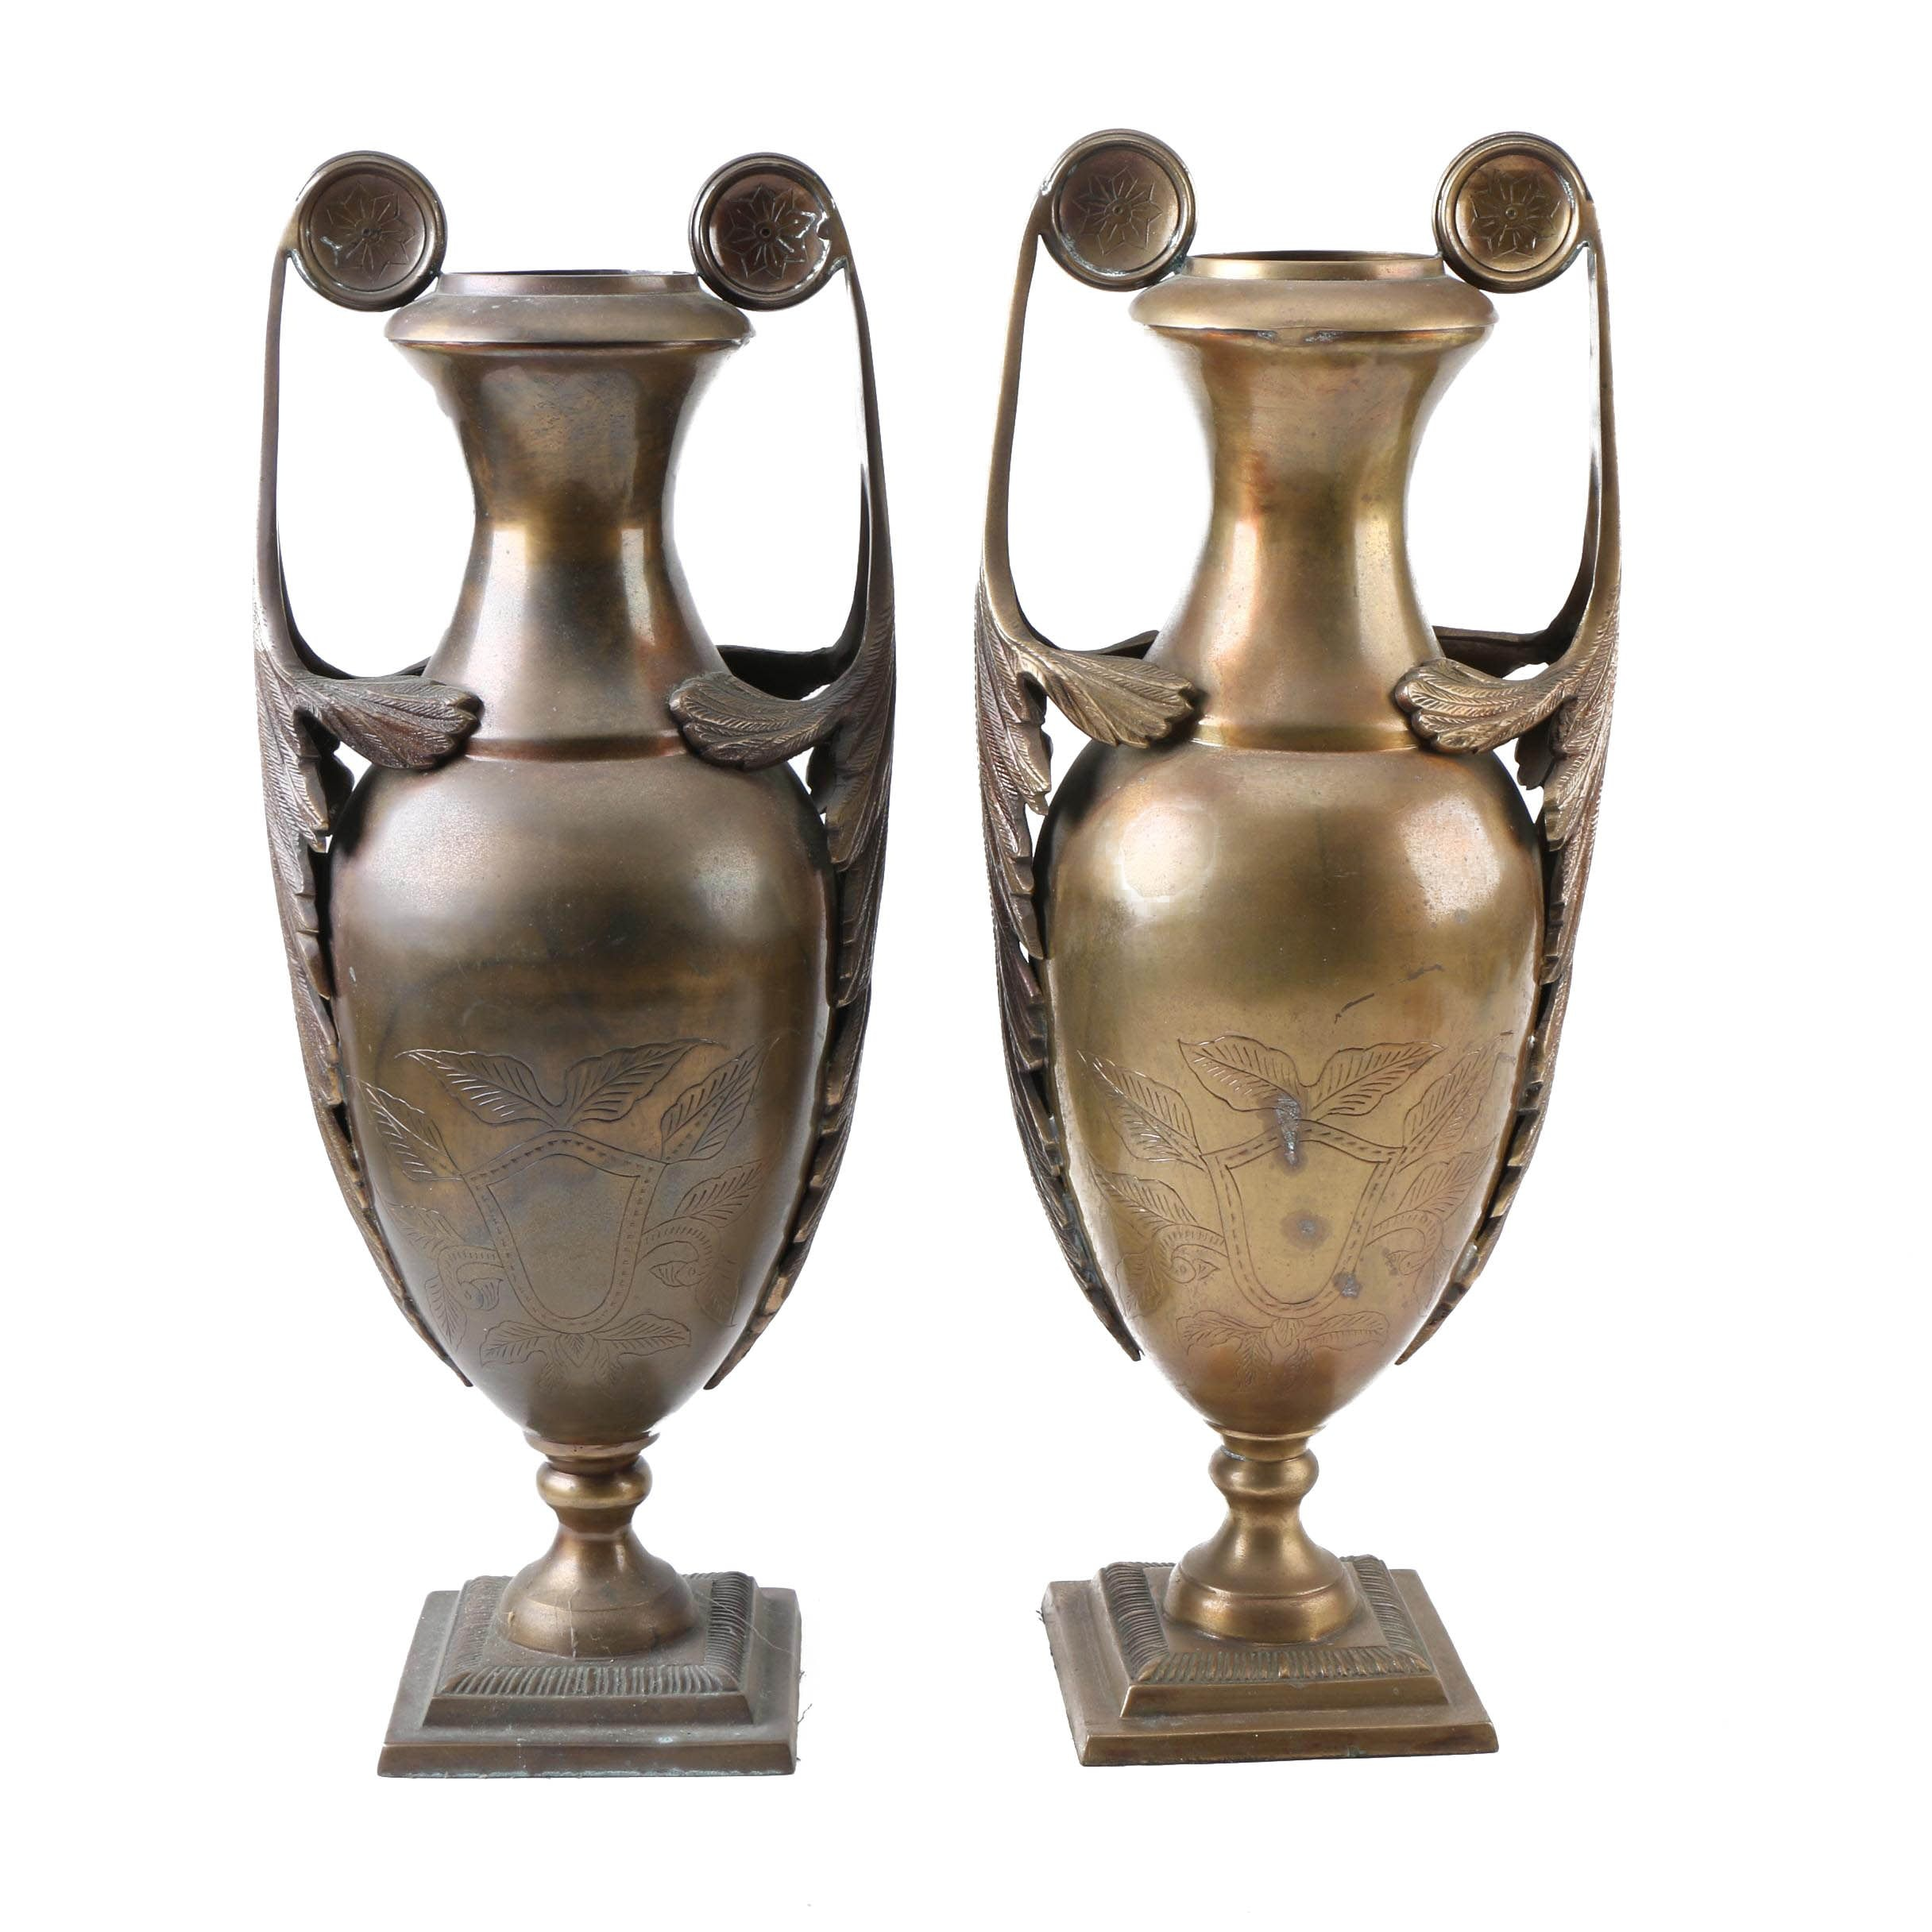 Pair of Metal Urns